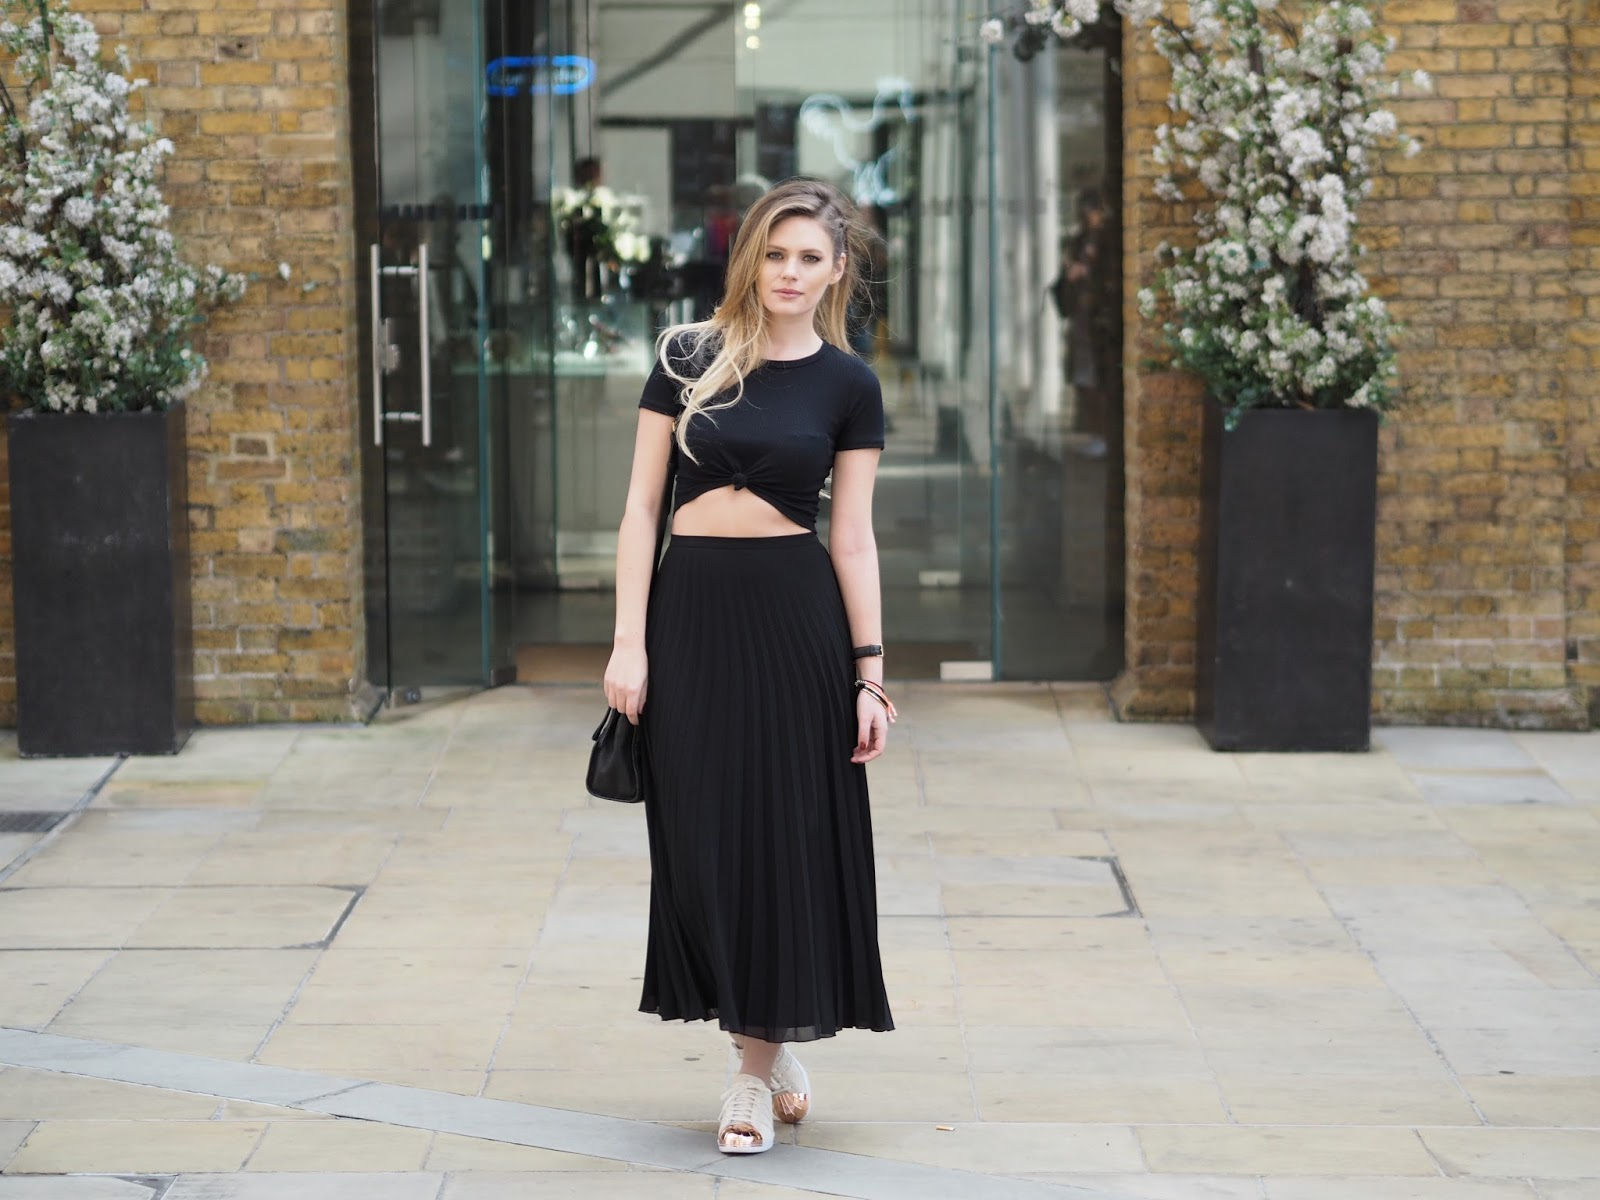 London Fashion Weekend with The Blogger Programme